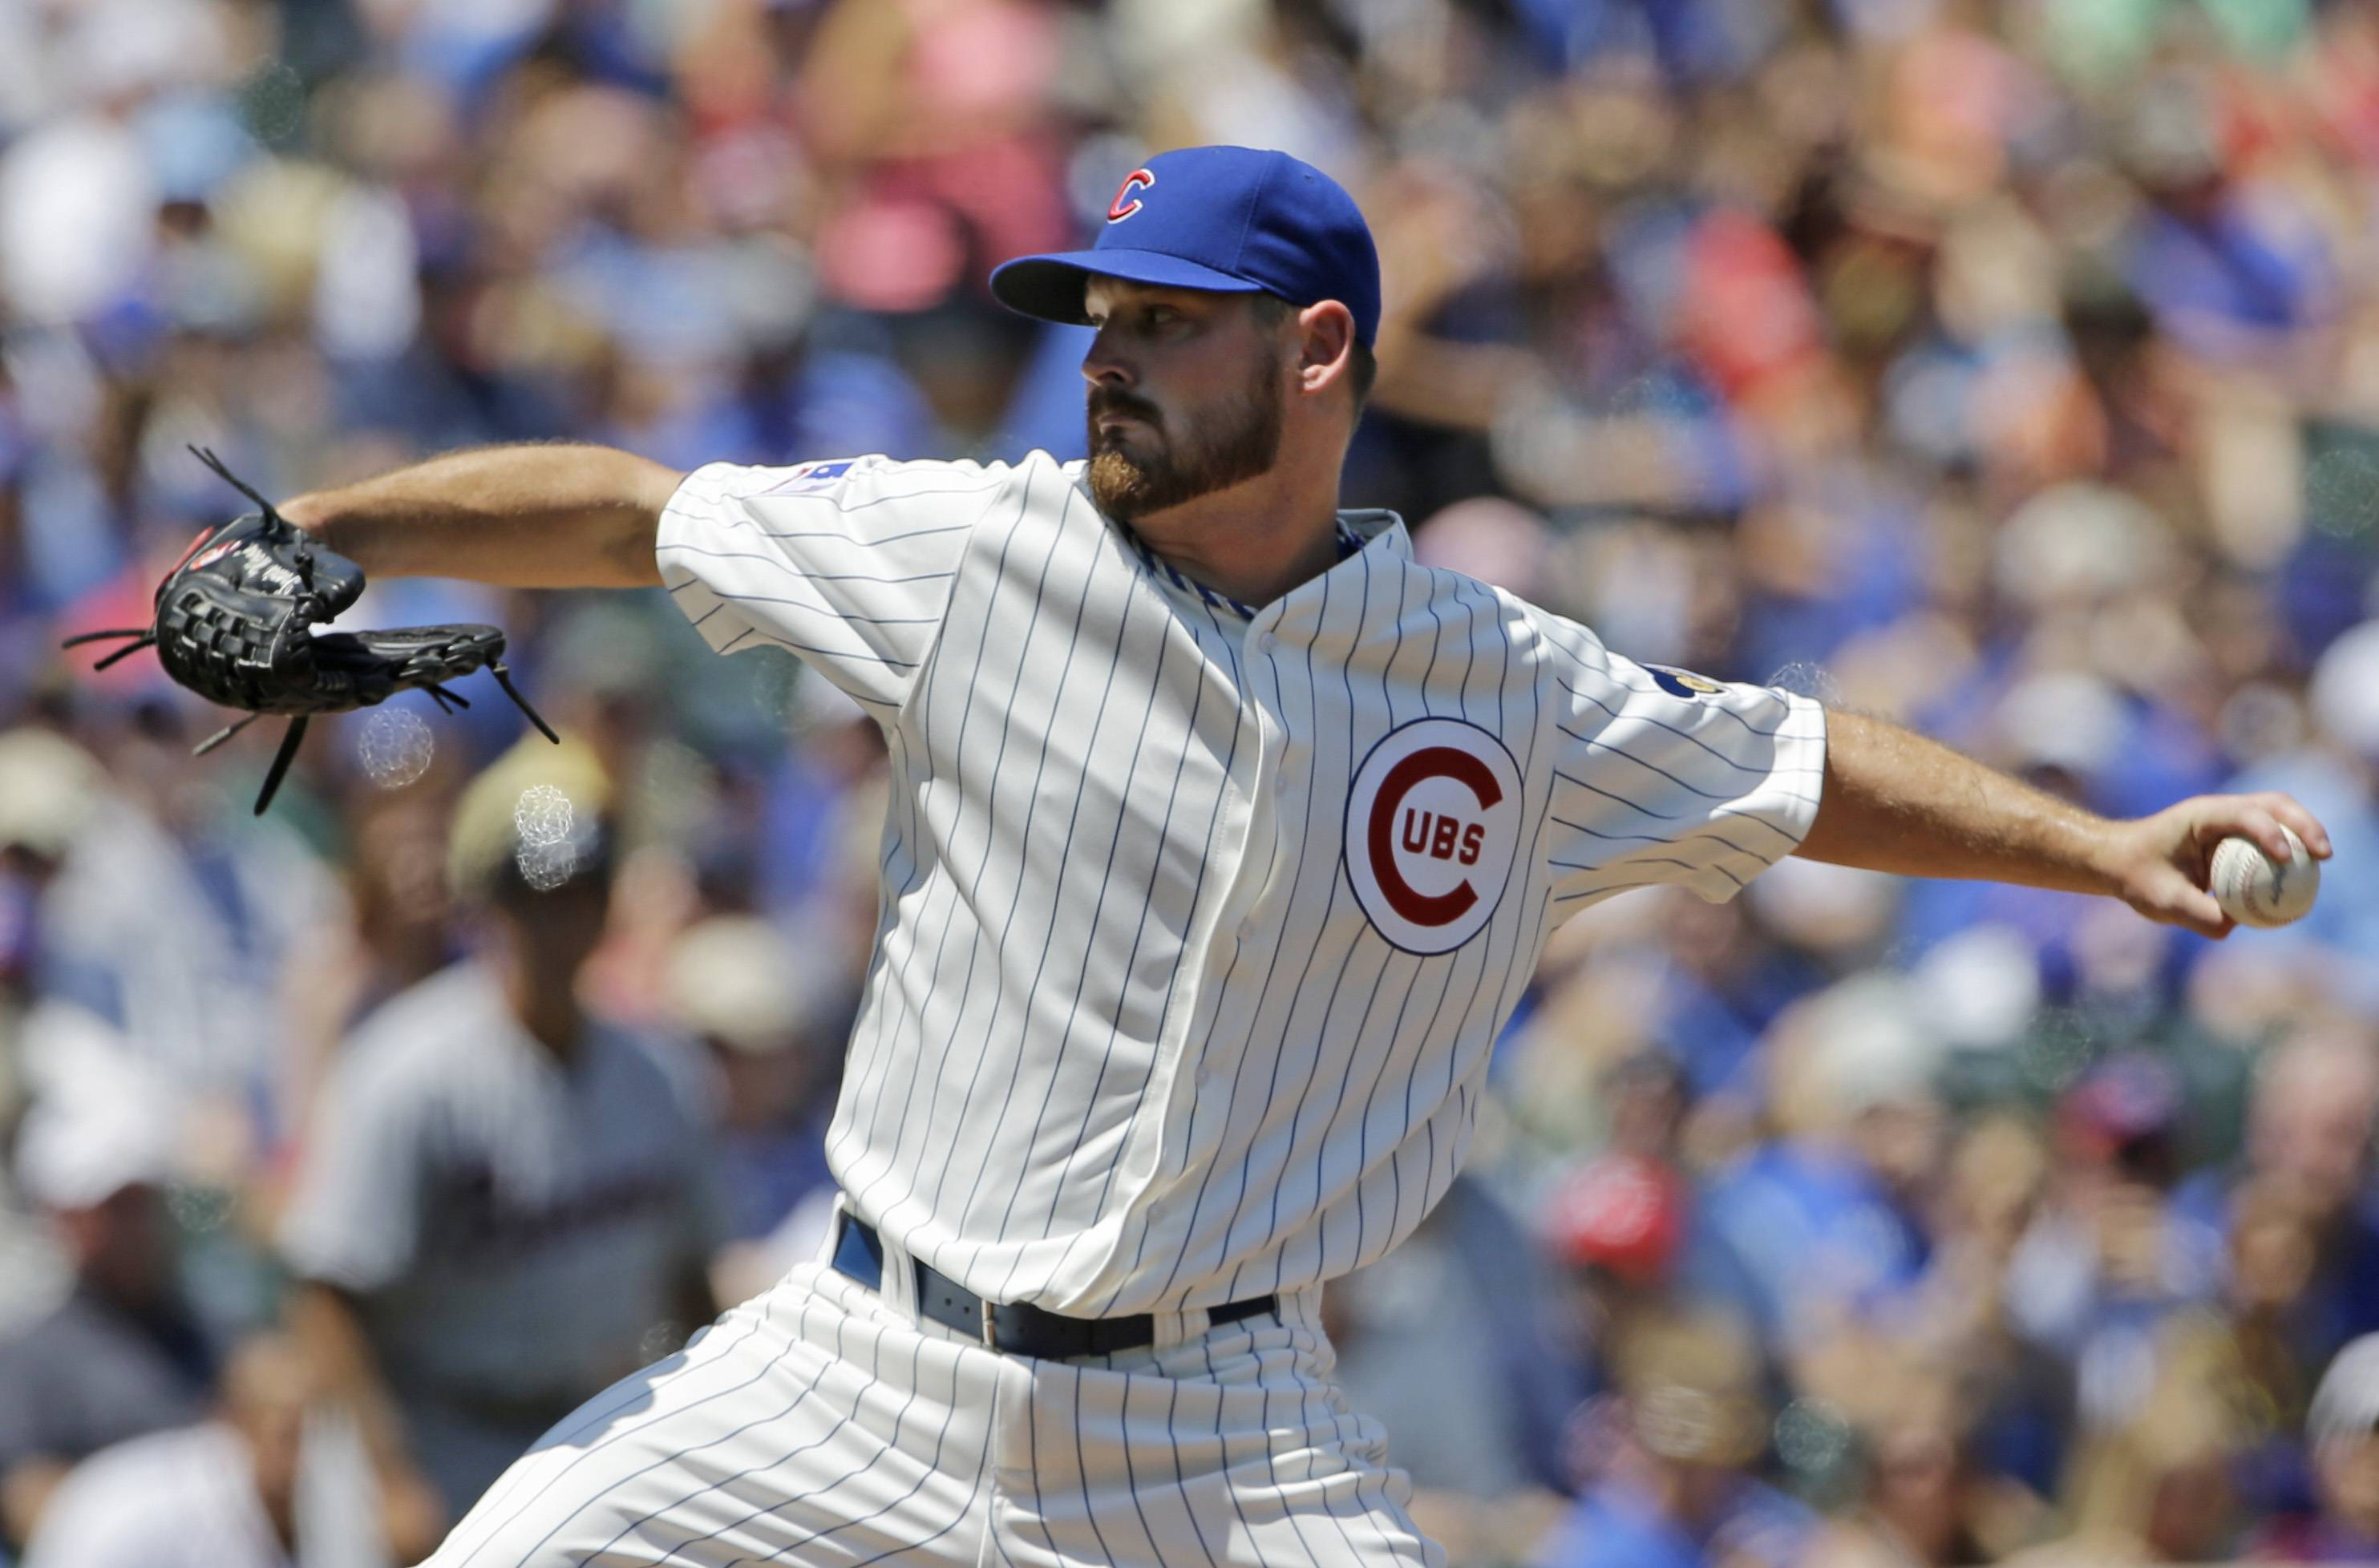 Travis Wood allowed 7 runs in 6 innings Sunday at Wrigley Field. After a 2013 campaign in which the Cubs' starter posted a 3.11 ERA, that number as ballooned in 2014 to 4.96